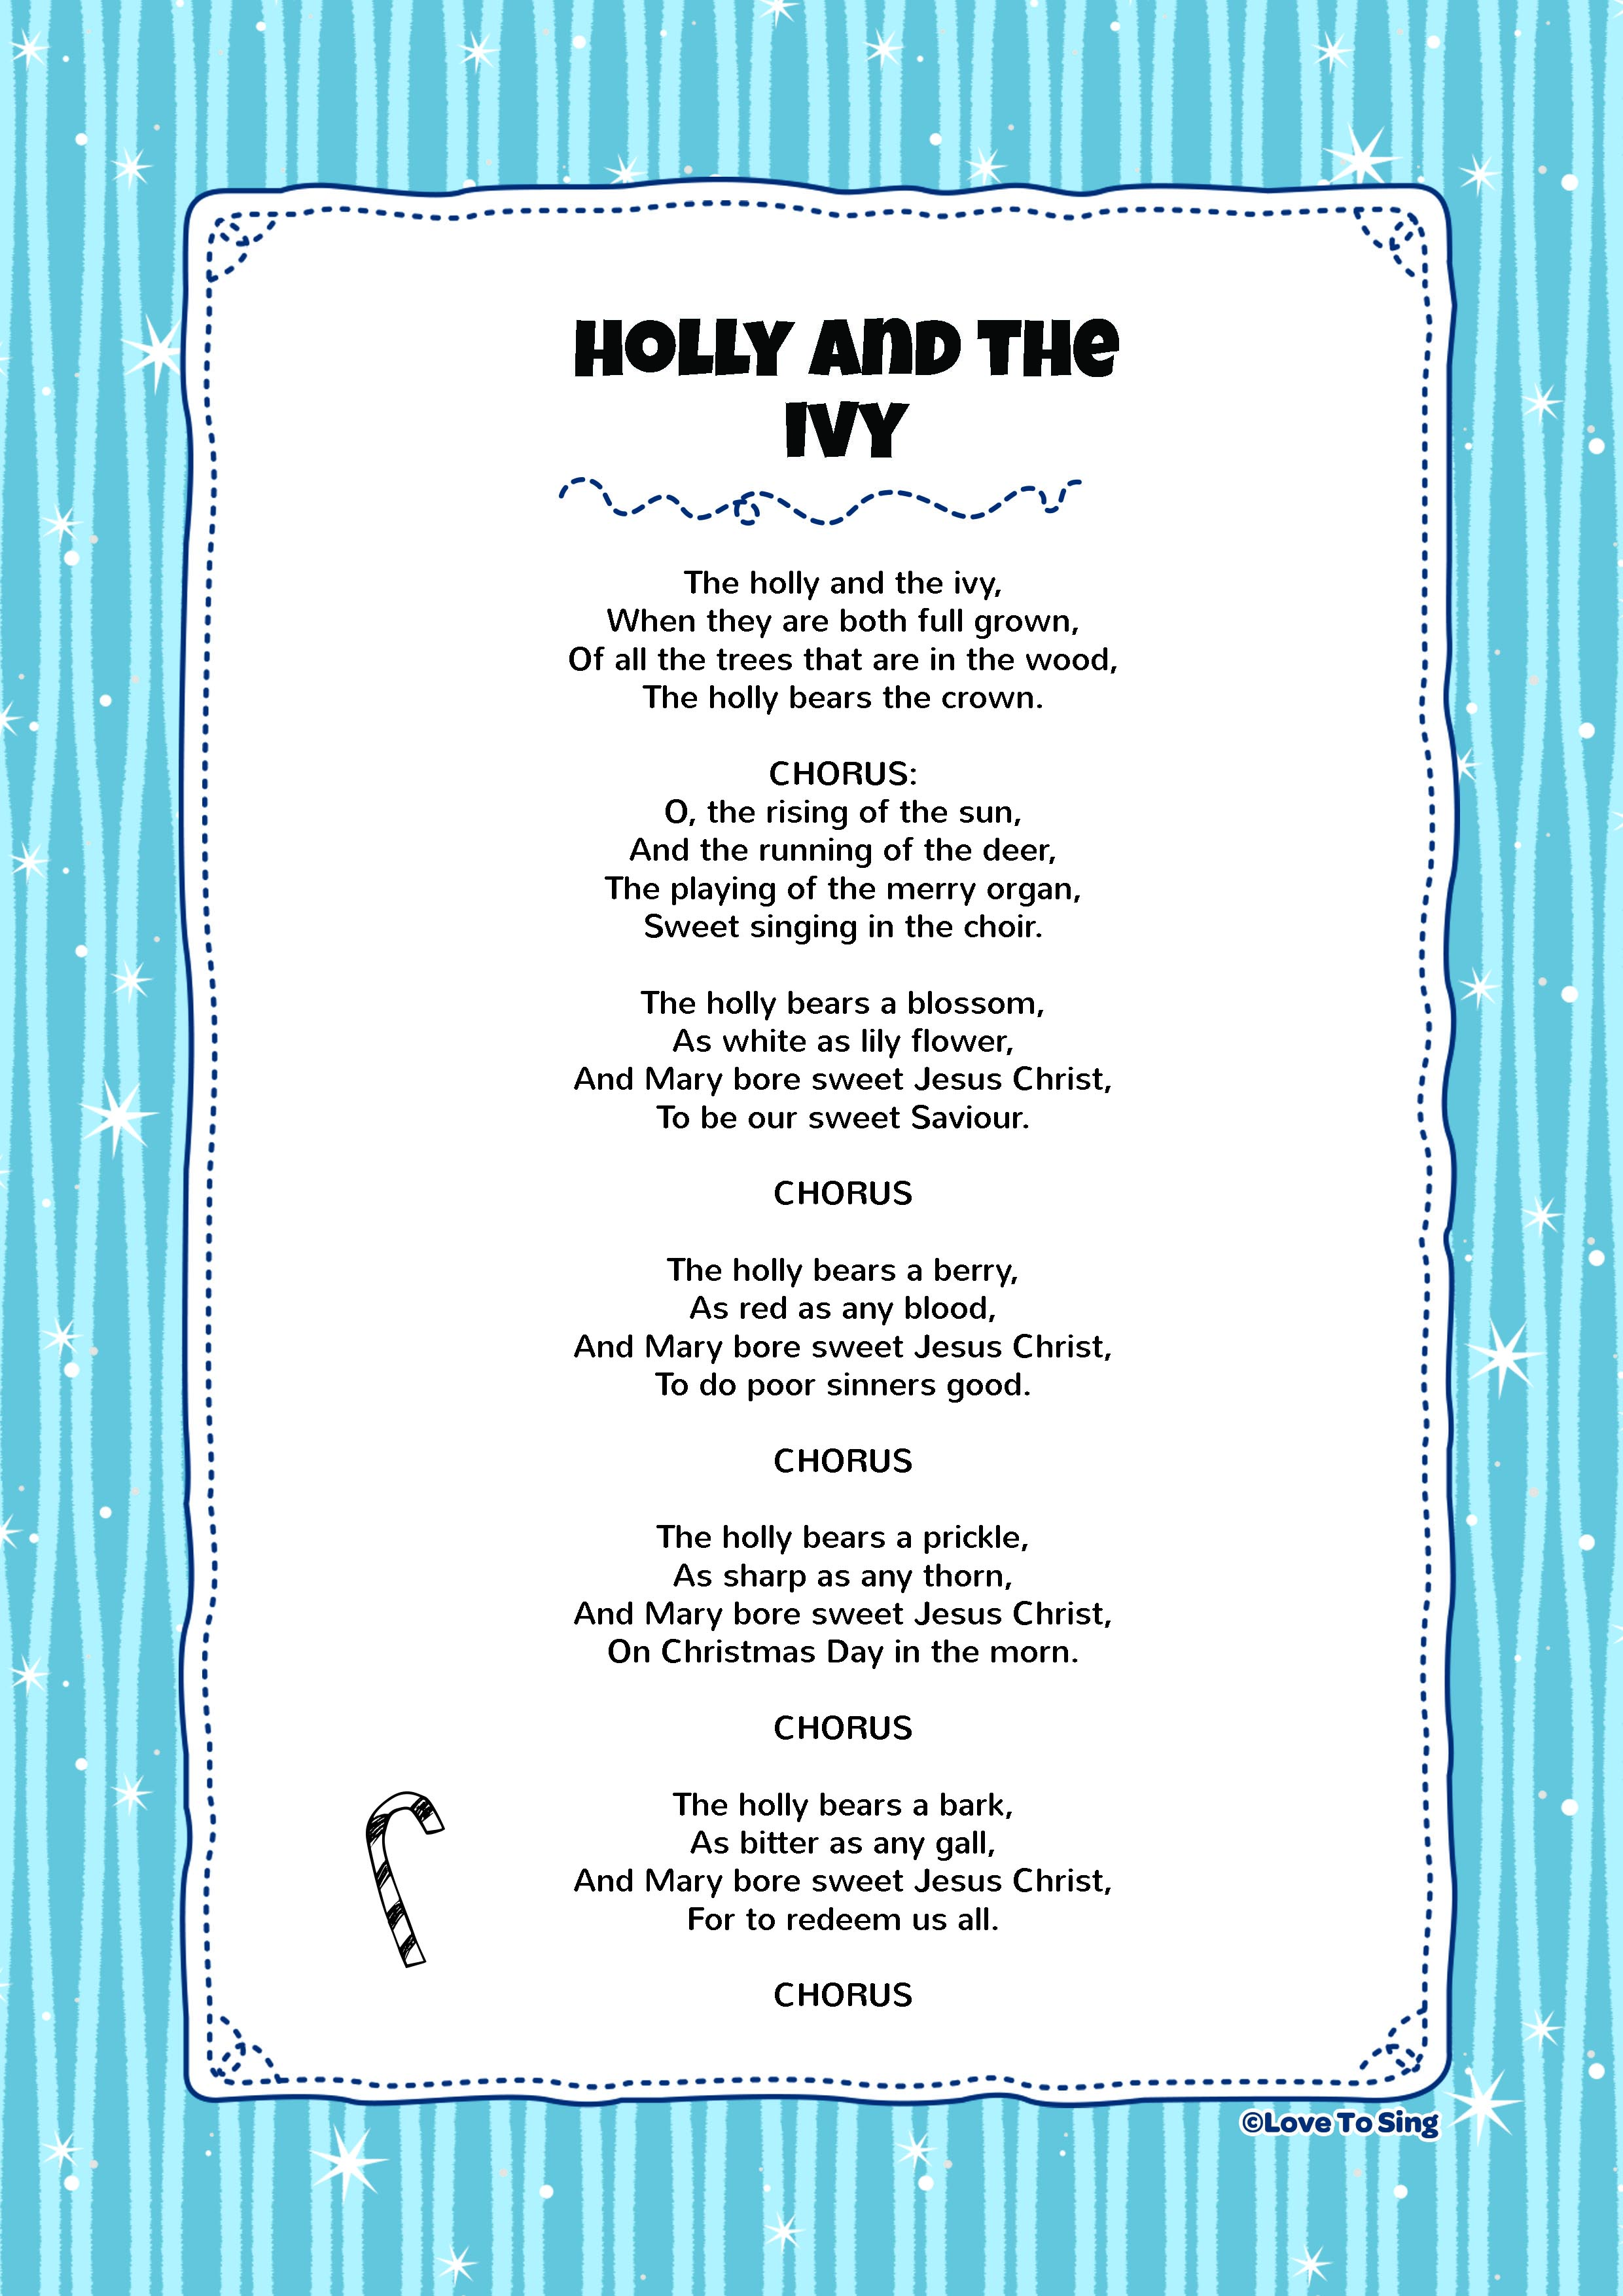 Holly And The Ivy | Kids Video Song with FREE Lyrics ...